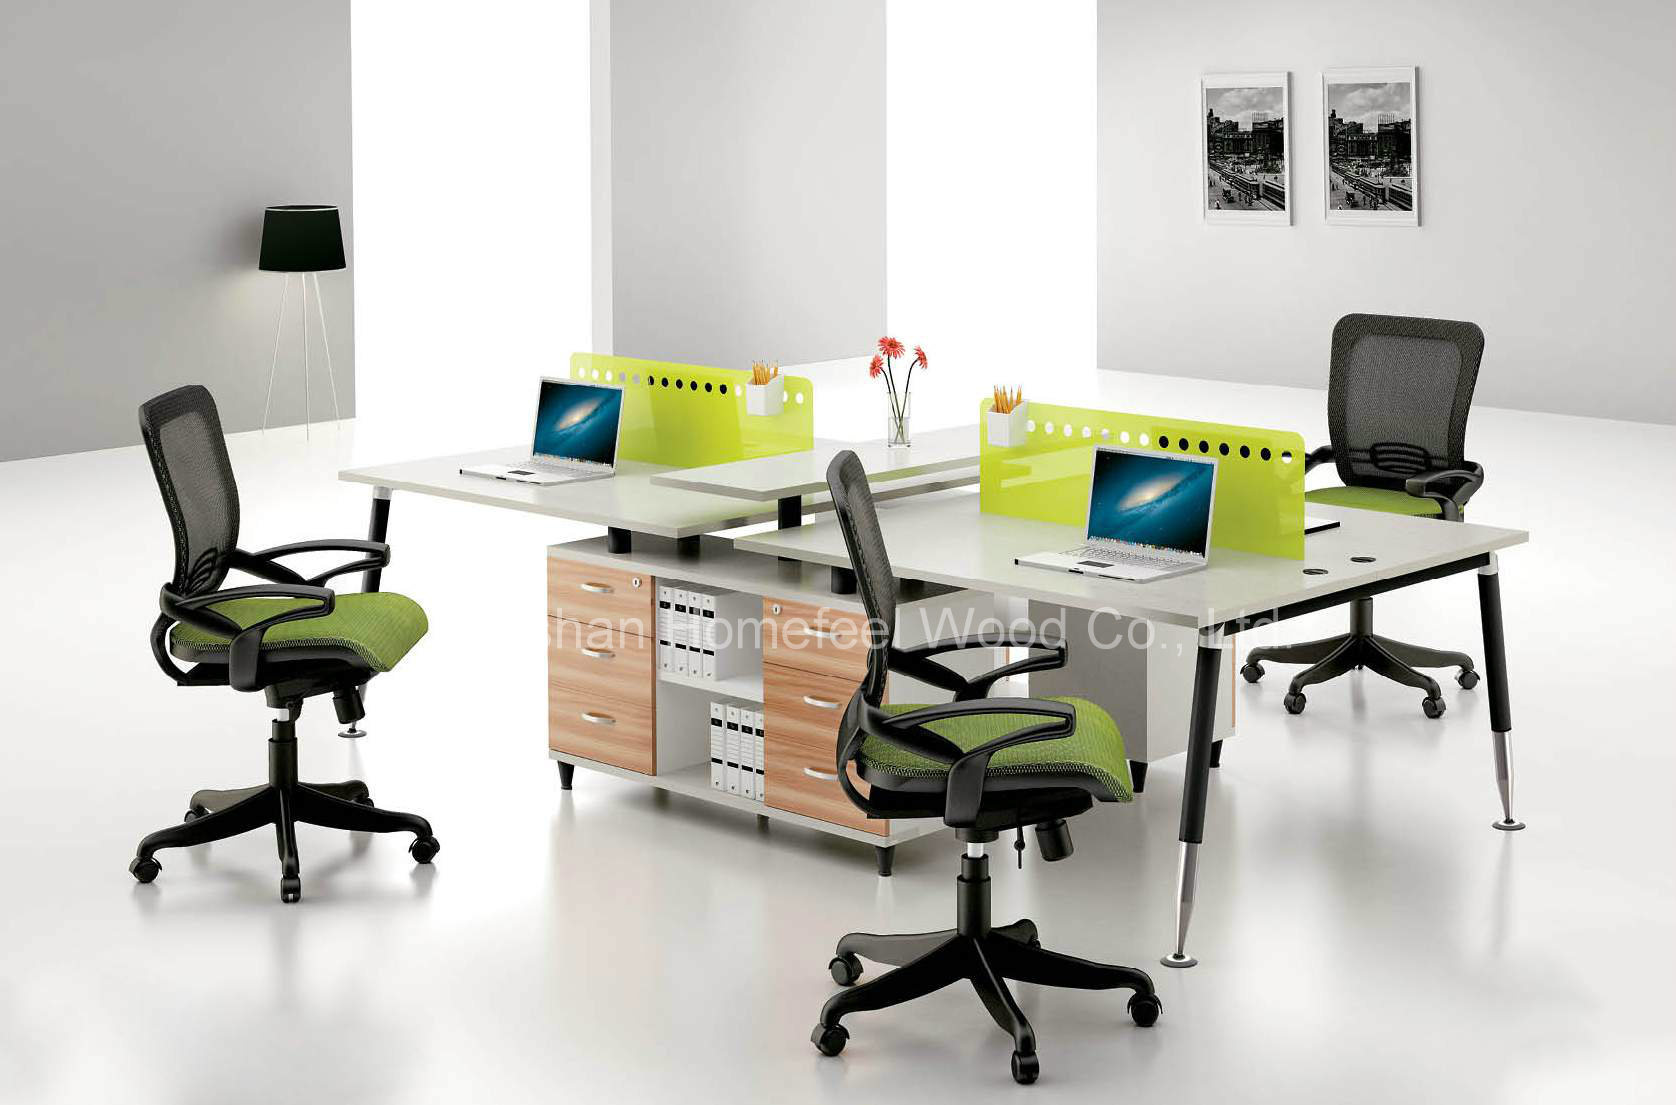 China small office area office workstation office for Desks for small areas